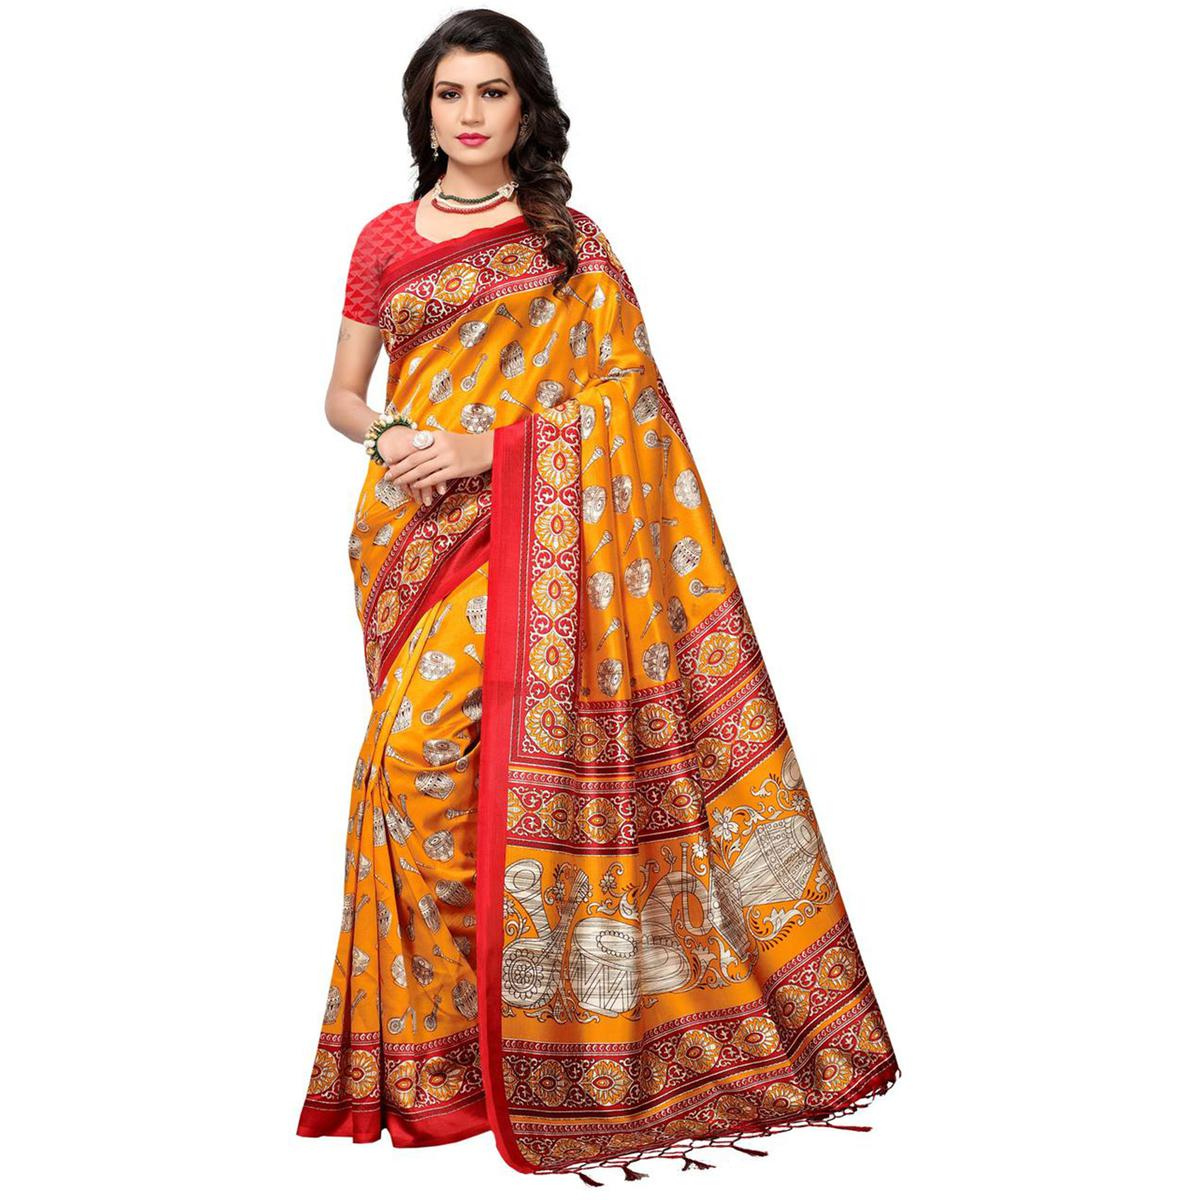 Groovy Yellow Colored Festive Wear Printed Mysore Art Silk Saree